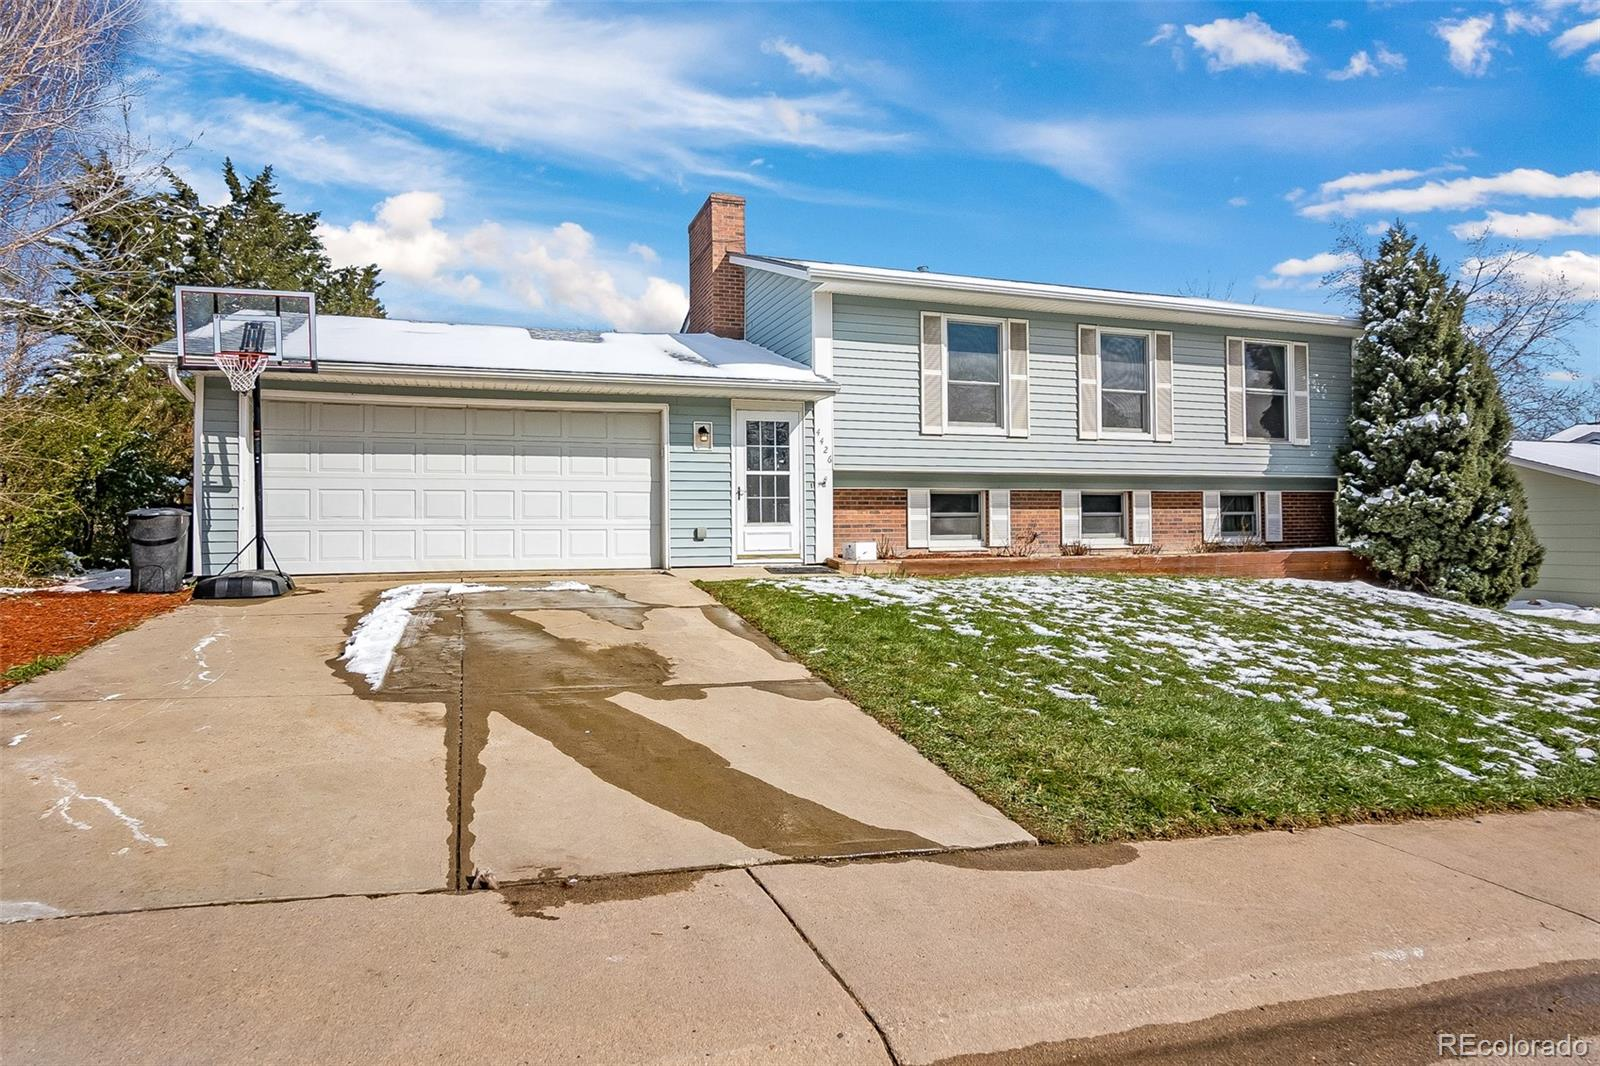 Nicely updated and move in ready home in Friendly Hills. Newer Samsung kitchen appliances, RV parking. New wood floors in the kitchen along with new carpet in the lower level. Newer furnace and hot water heater. This home has a lot to offer, come take a look.